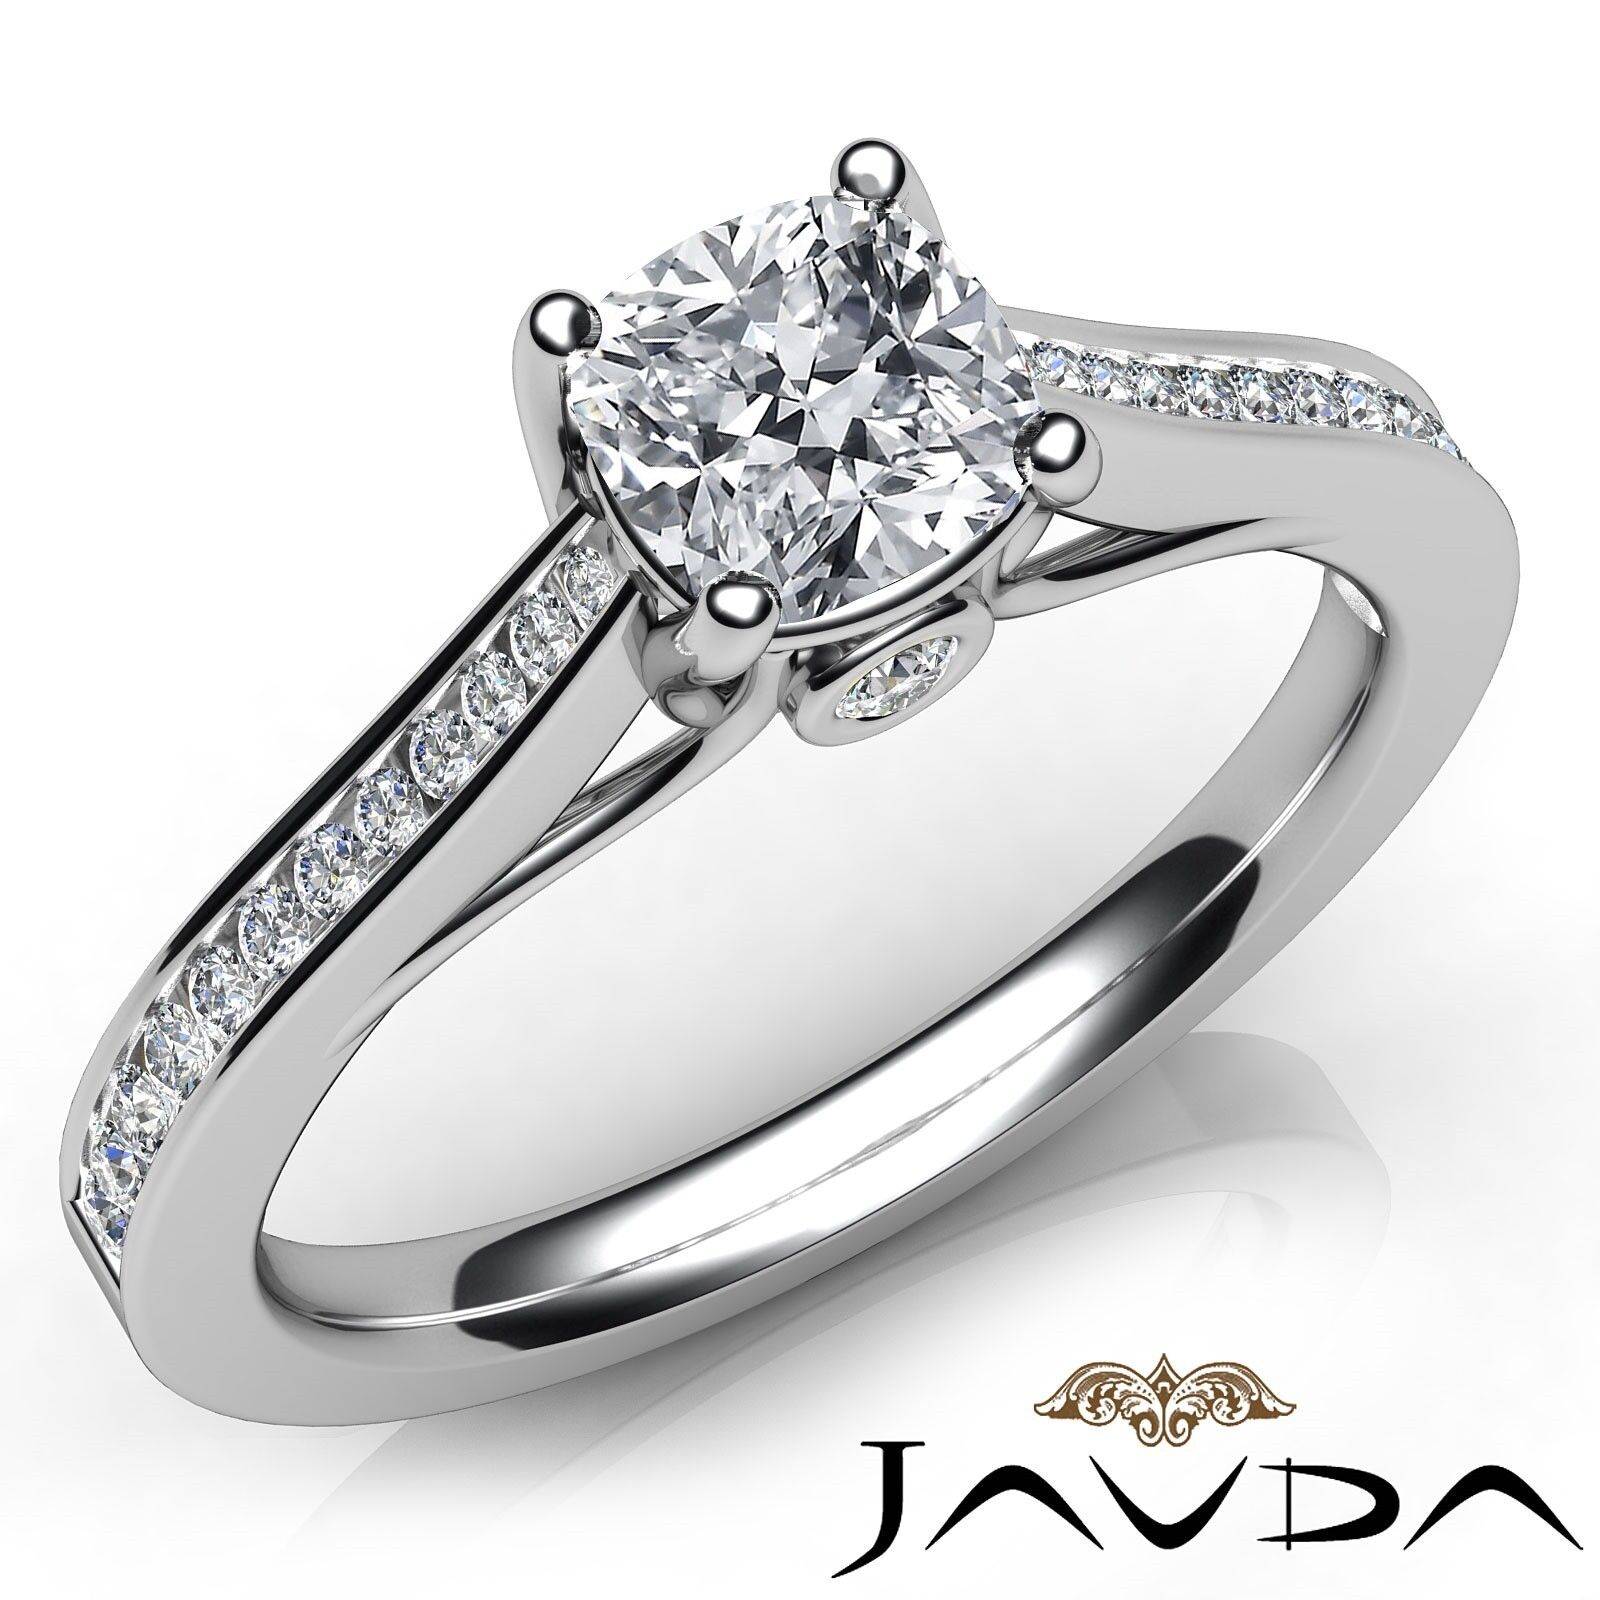 1ct Channel Bezel Prong Set Cushion Diamond Engagement Ring GIA I-VS2 White Gold